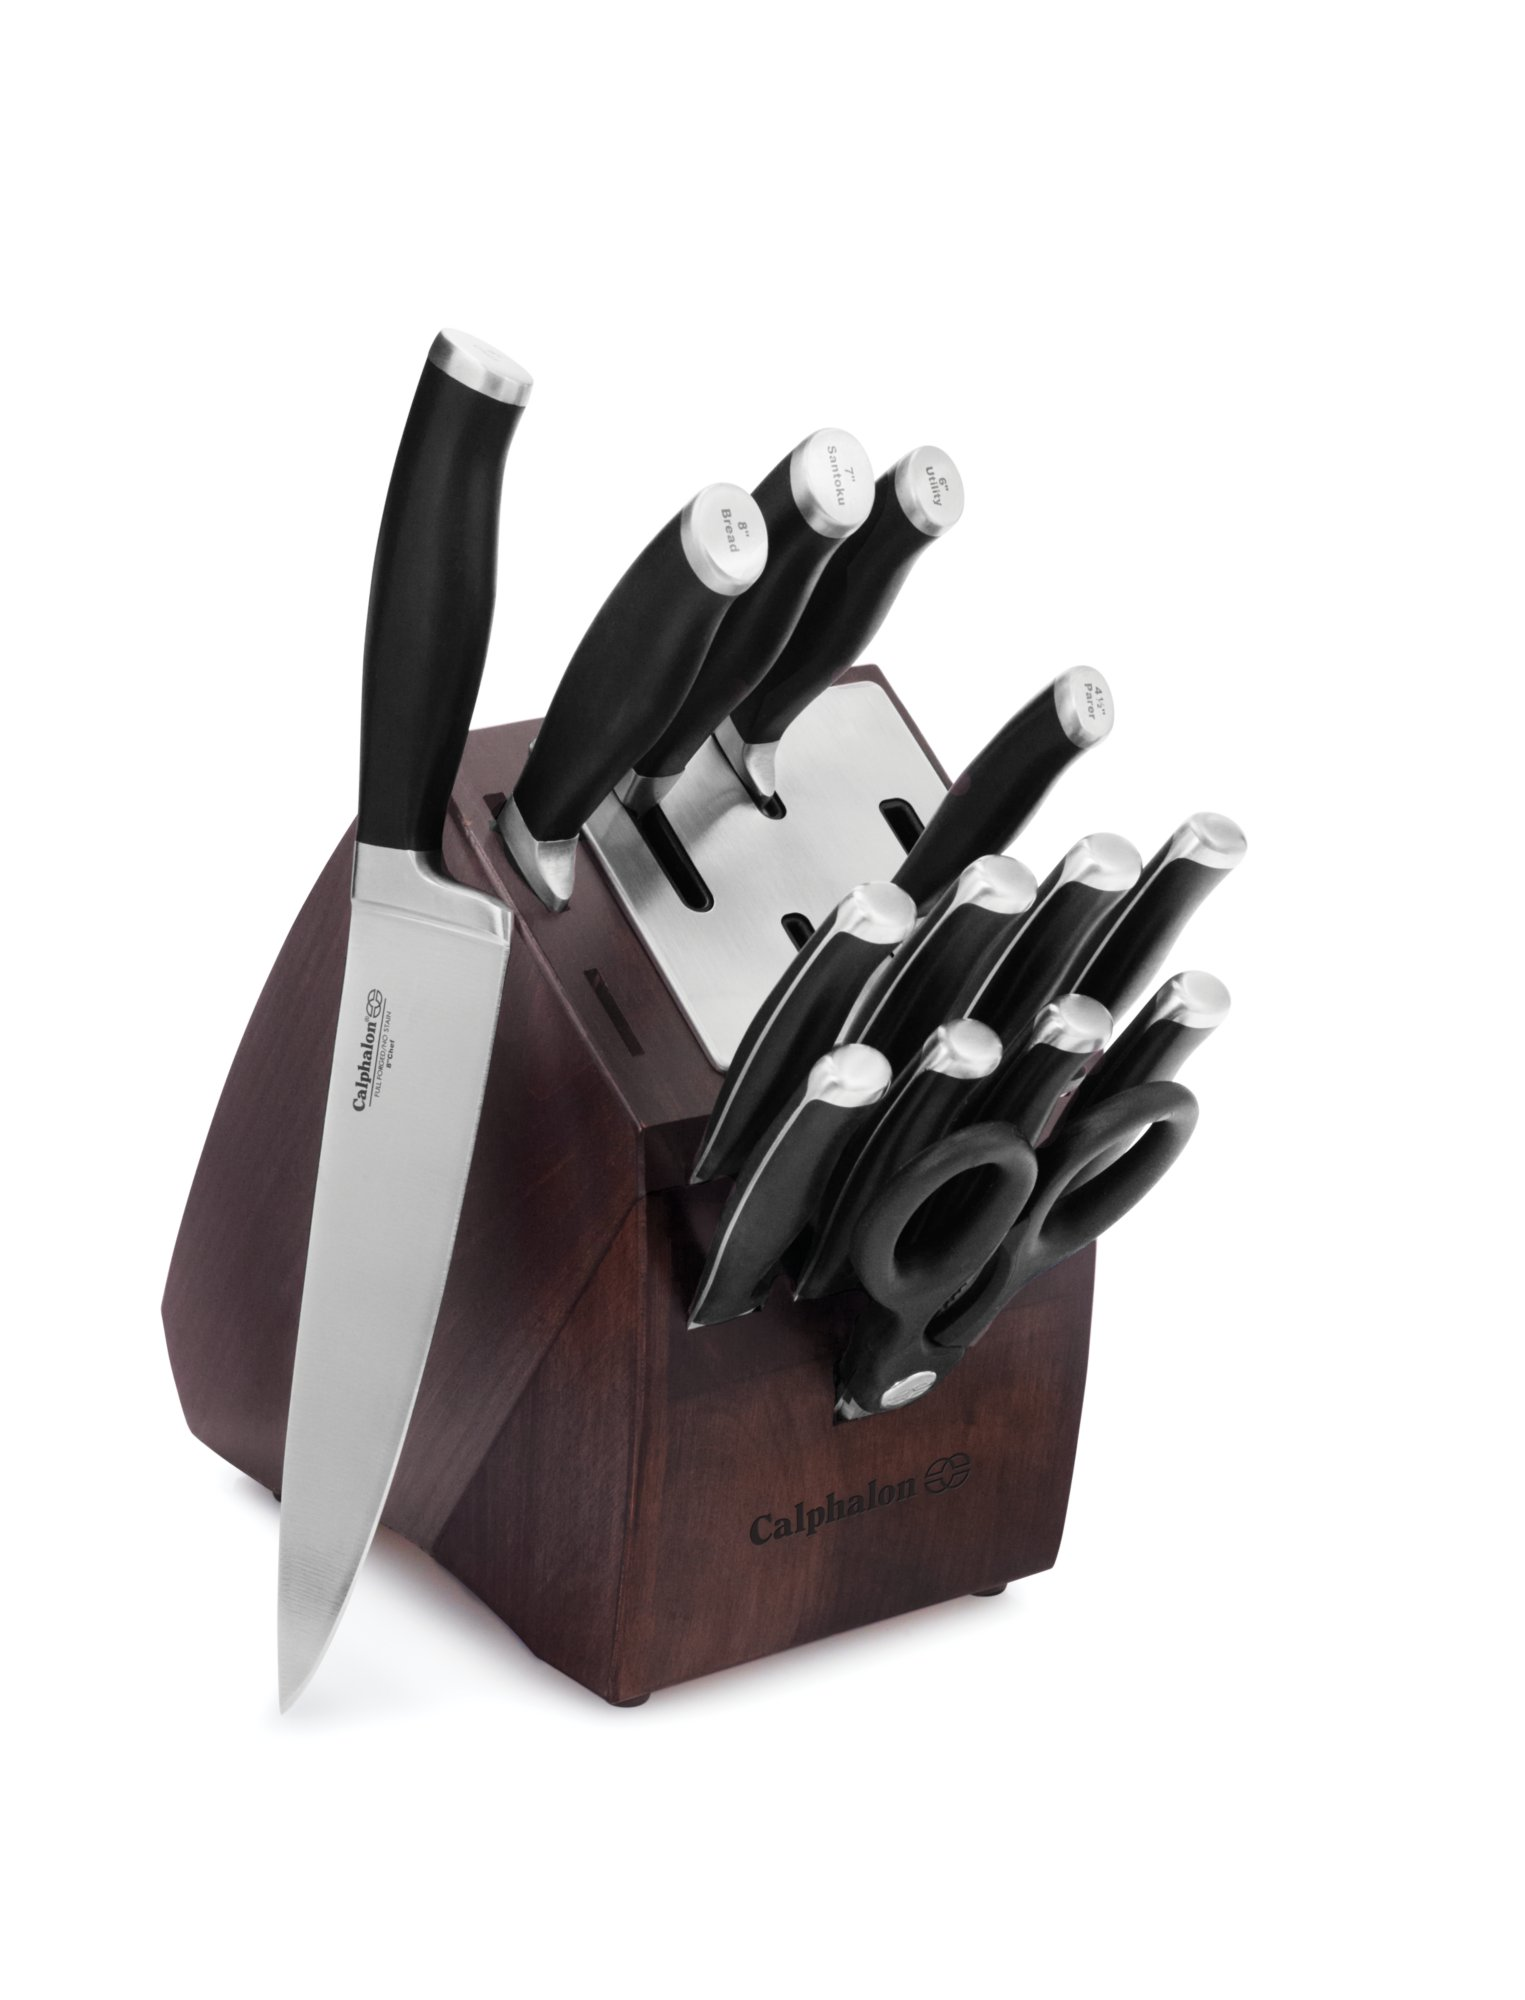 Self-Sharpening Knife Sets